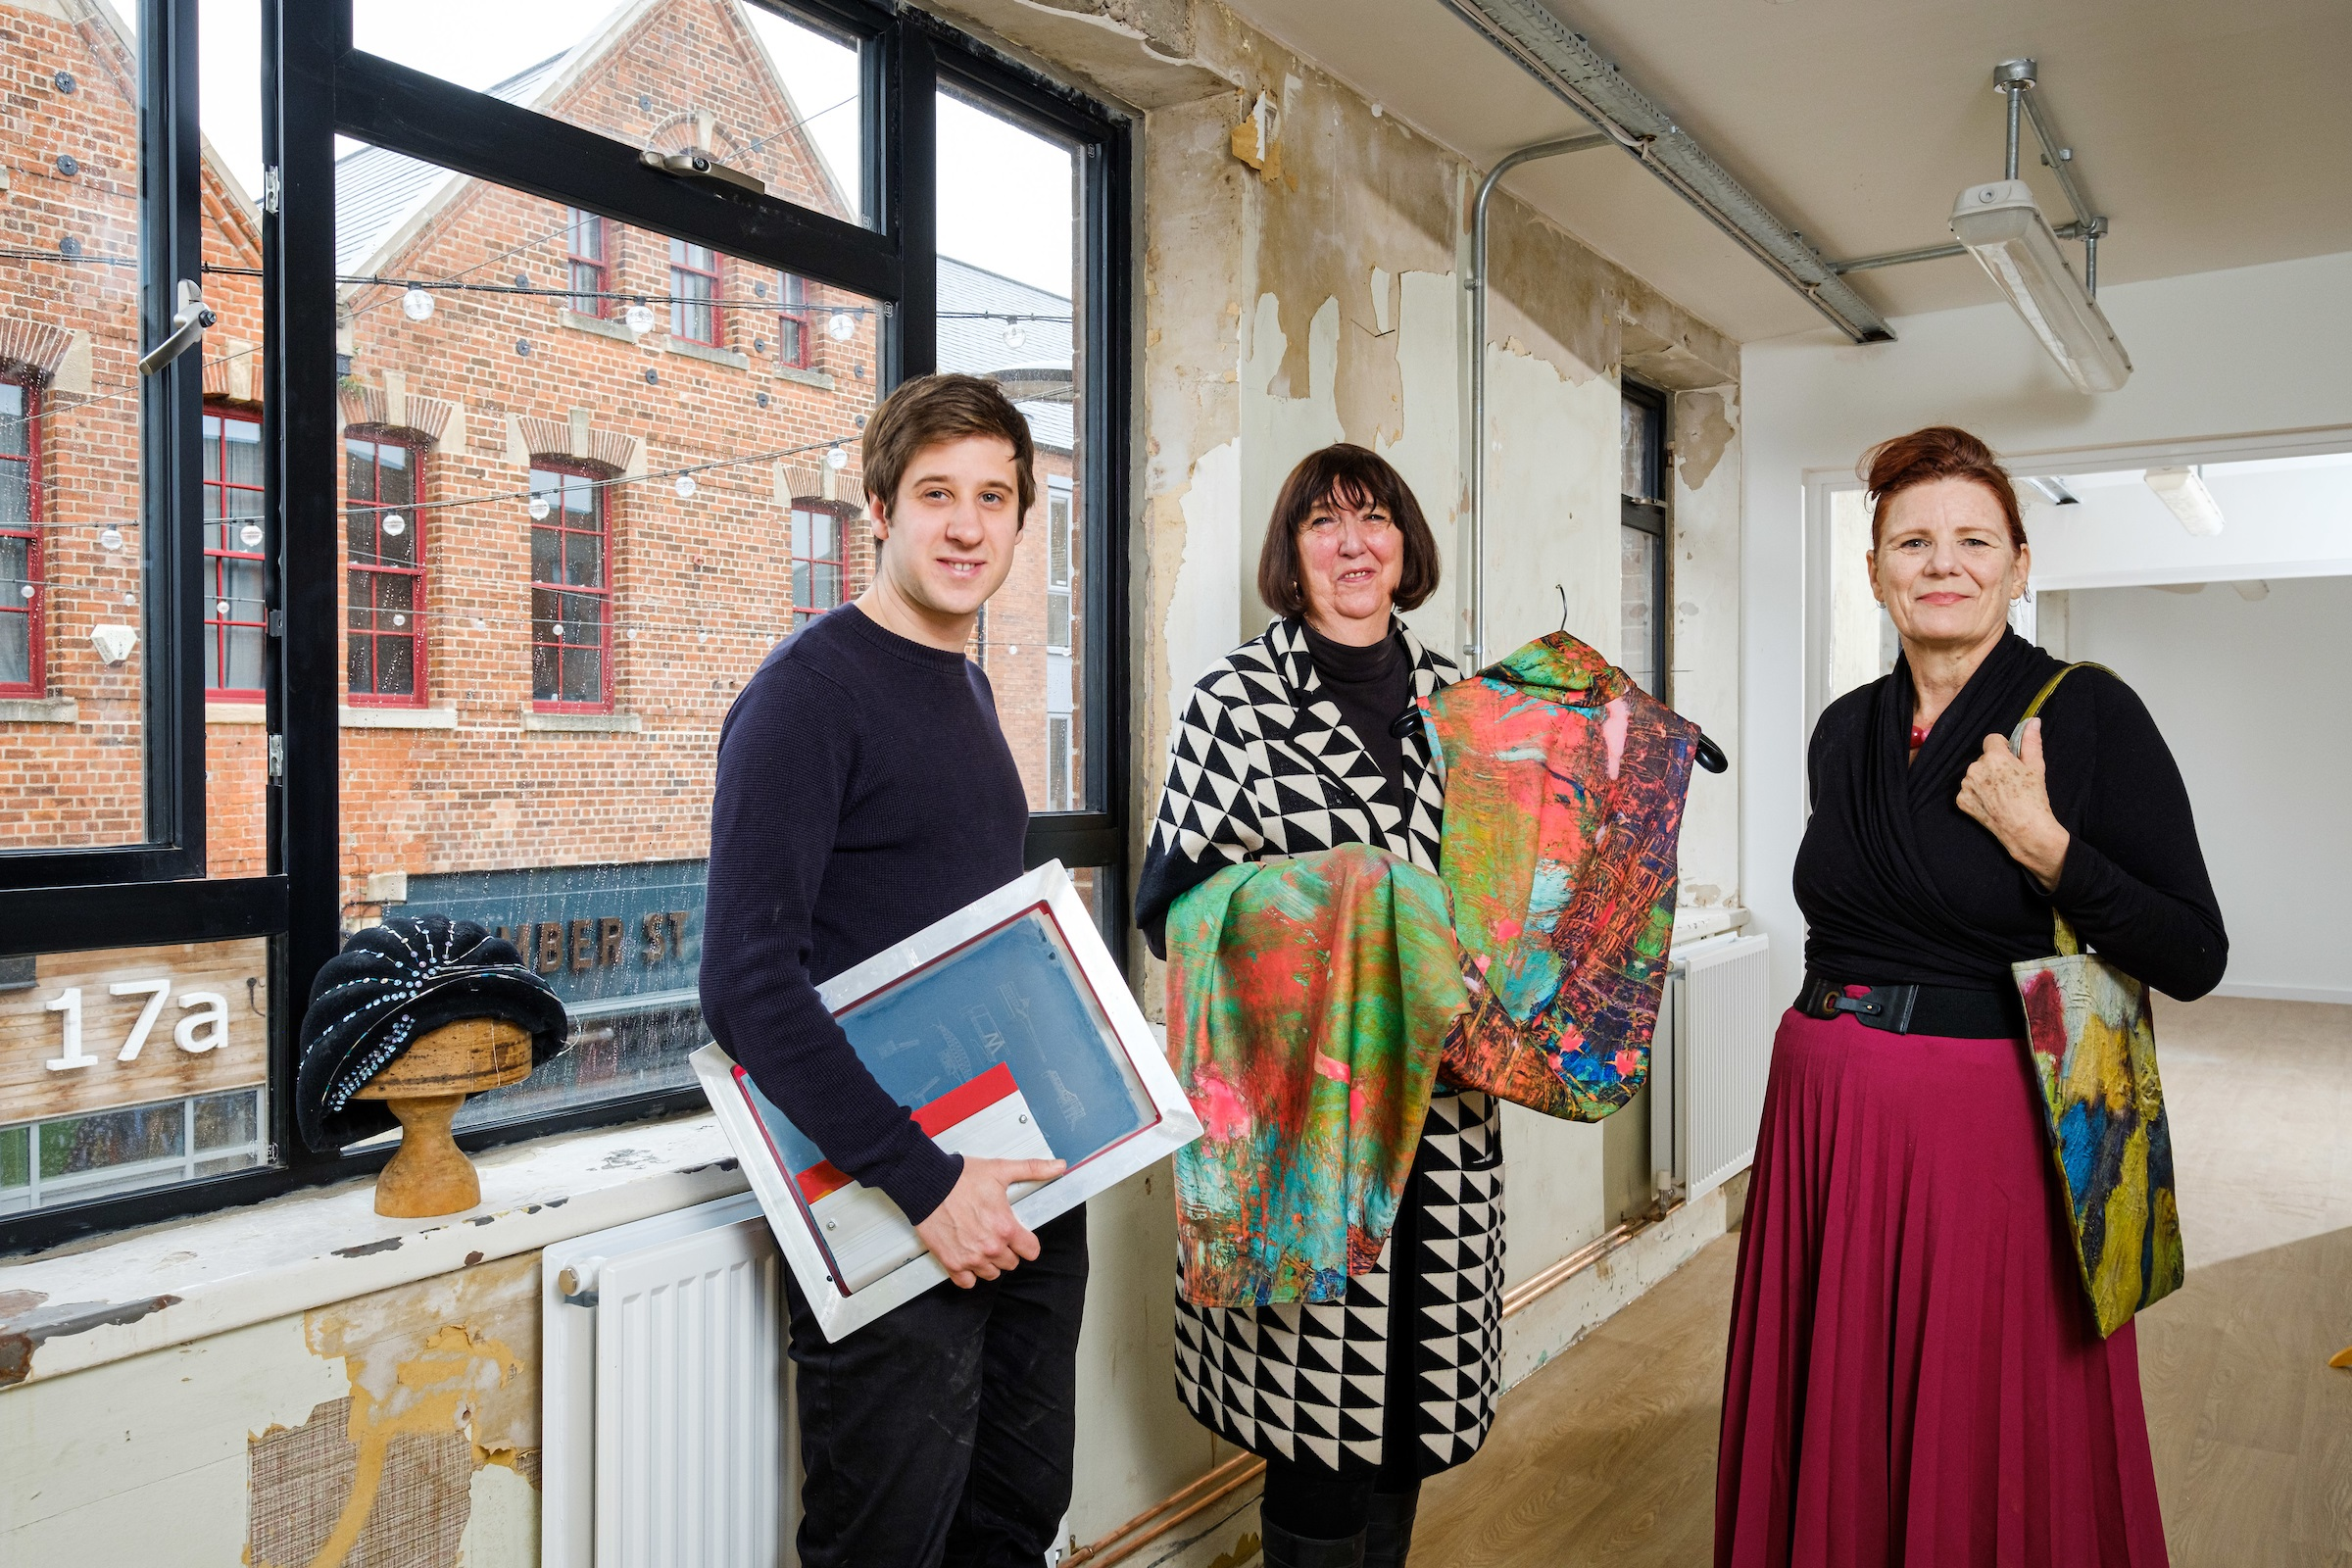 Joseph Cox, owner of Form Shop & Studio, left, with Lynn Benson and Annemarie Tickle of Feral Art School, one of the first organisations to join the Juice Studios community, inside the creative space.